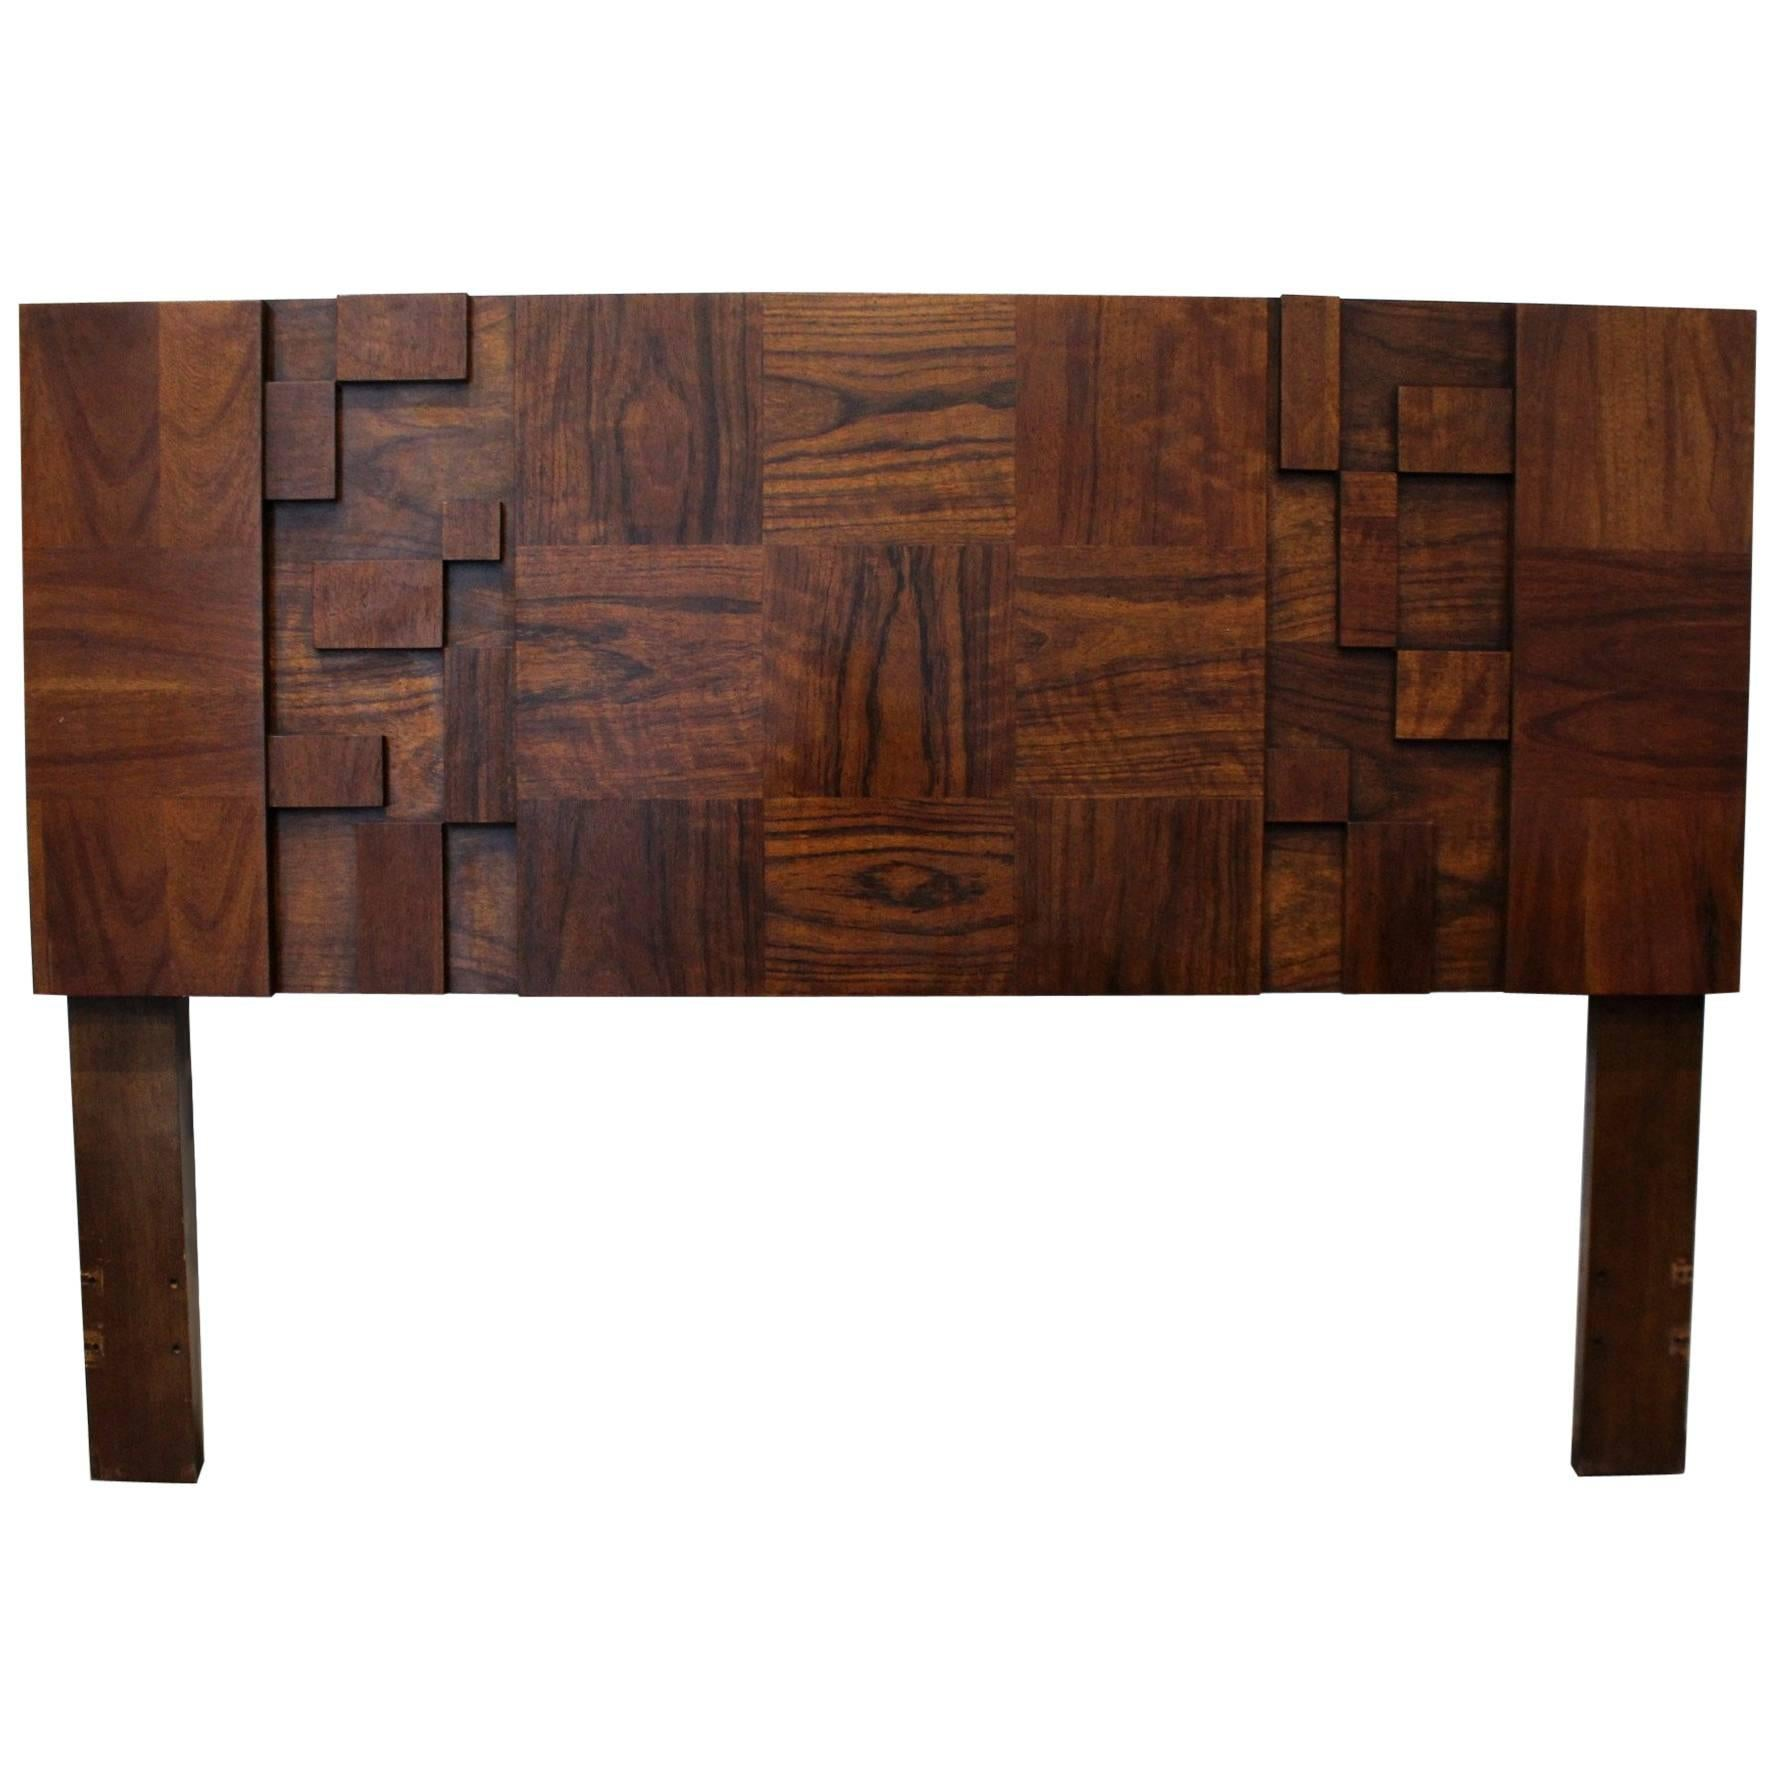 Etonnant 1970s Midcentury Brutalist Full Queen Headboard By Lane Furniture